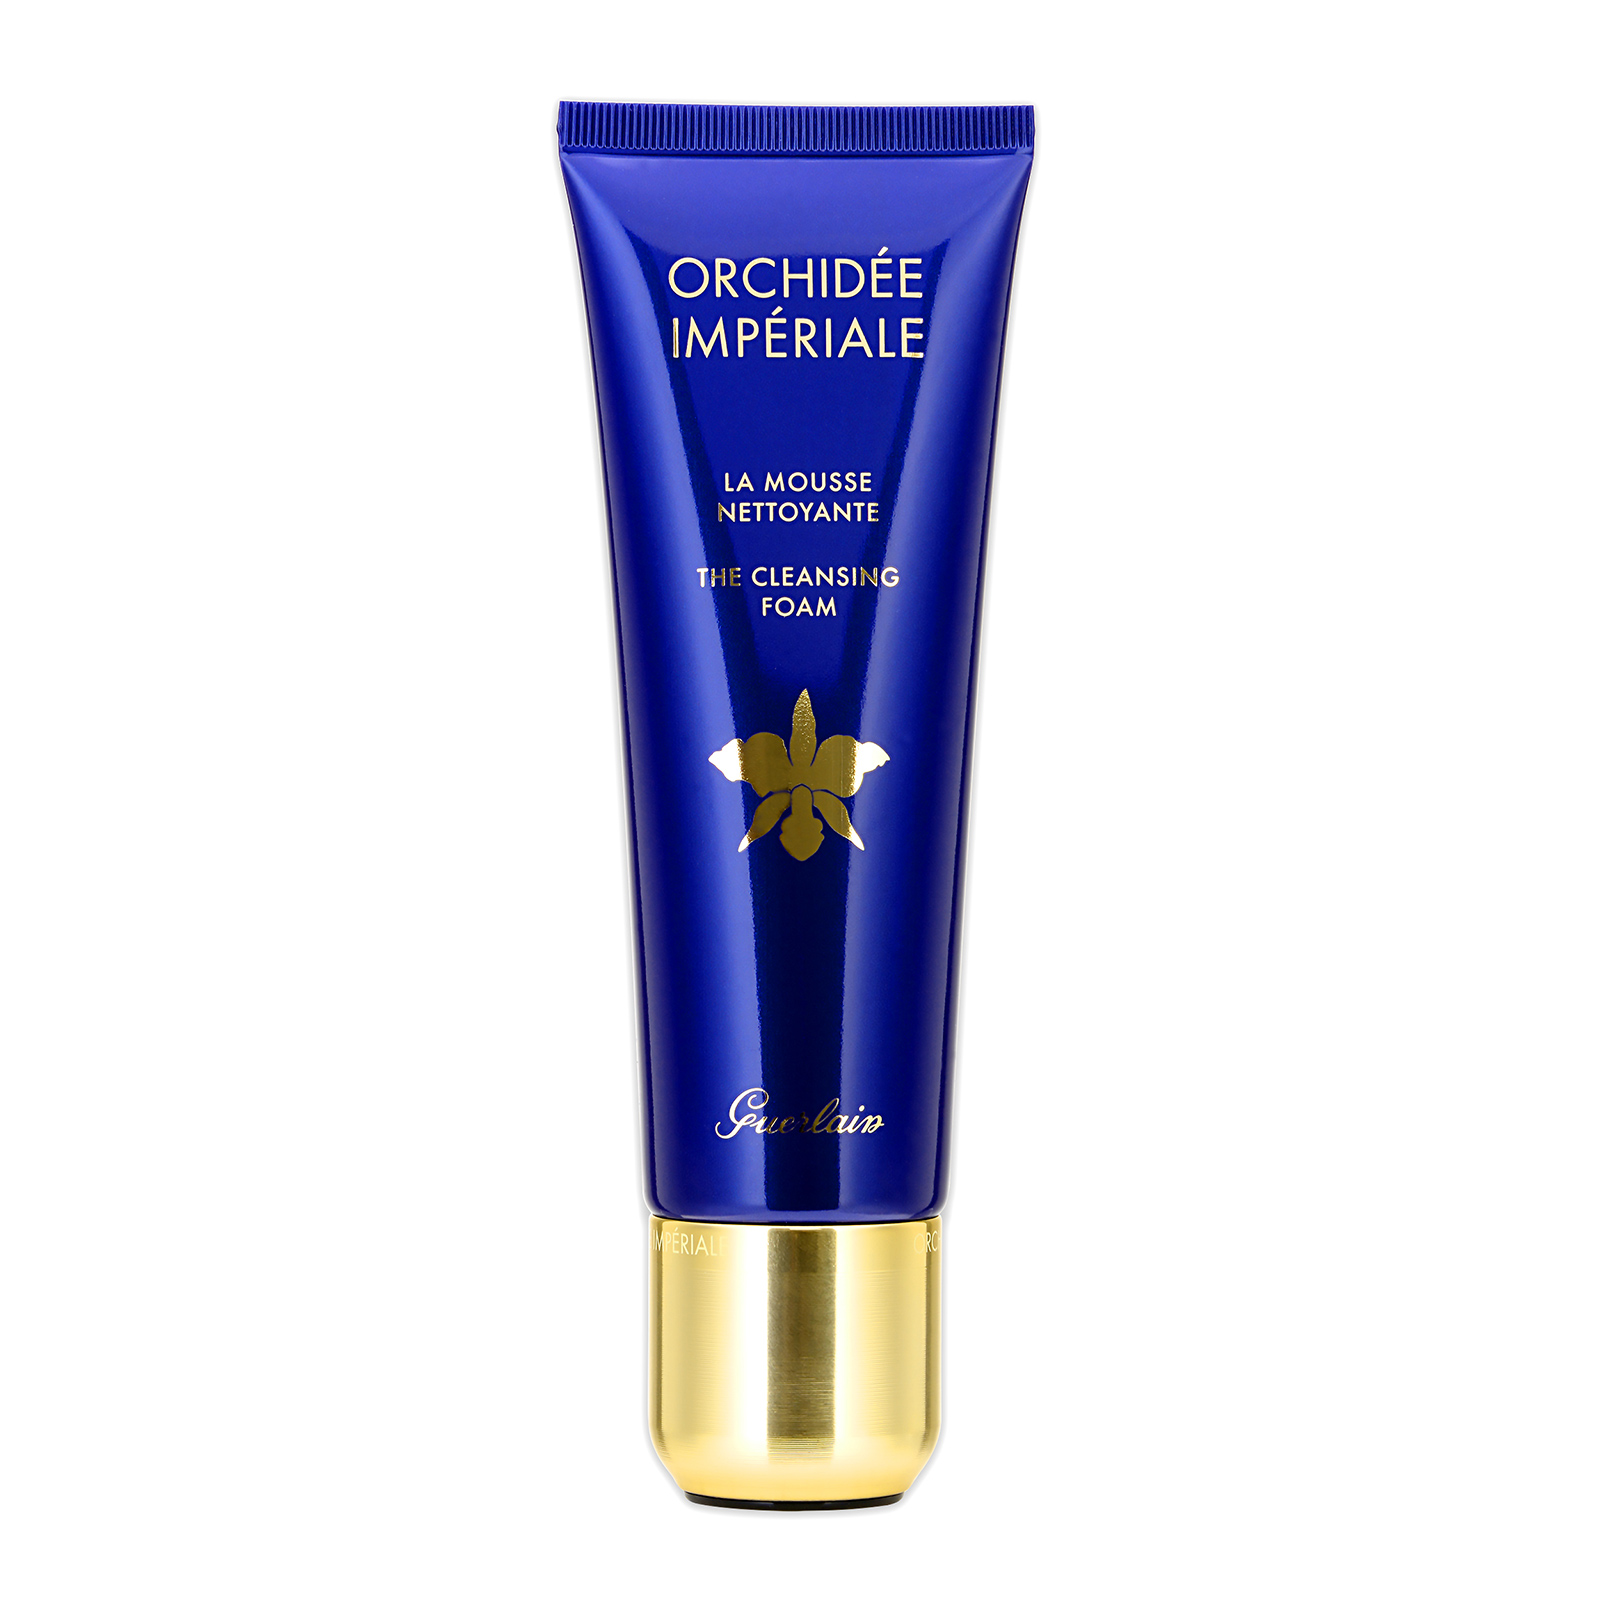 Guerlain Orchidee Imperiale   Exceptional Complete Care The Cleansing Foam 4.2oz, 125ml from Cosme-De.com